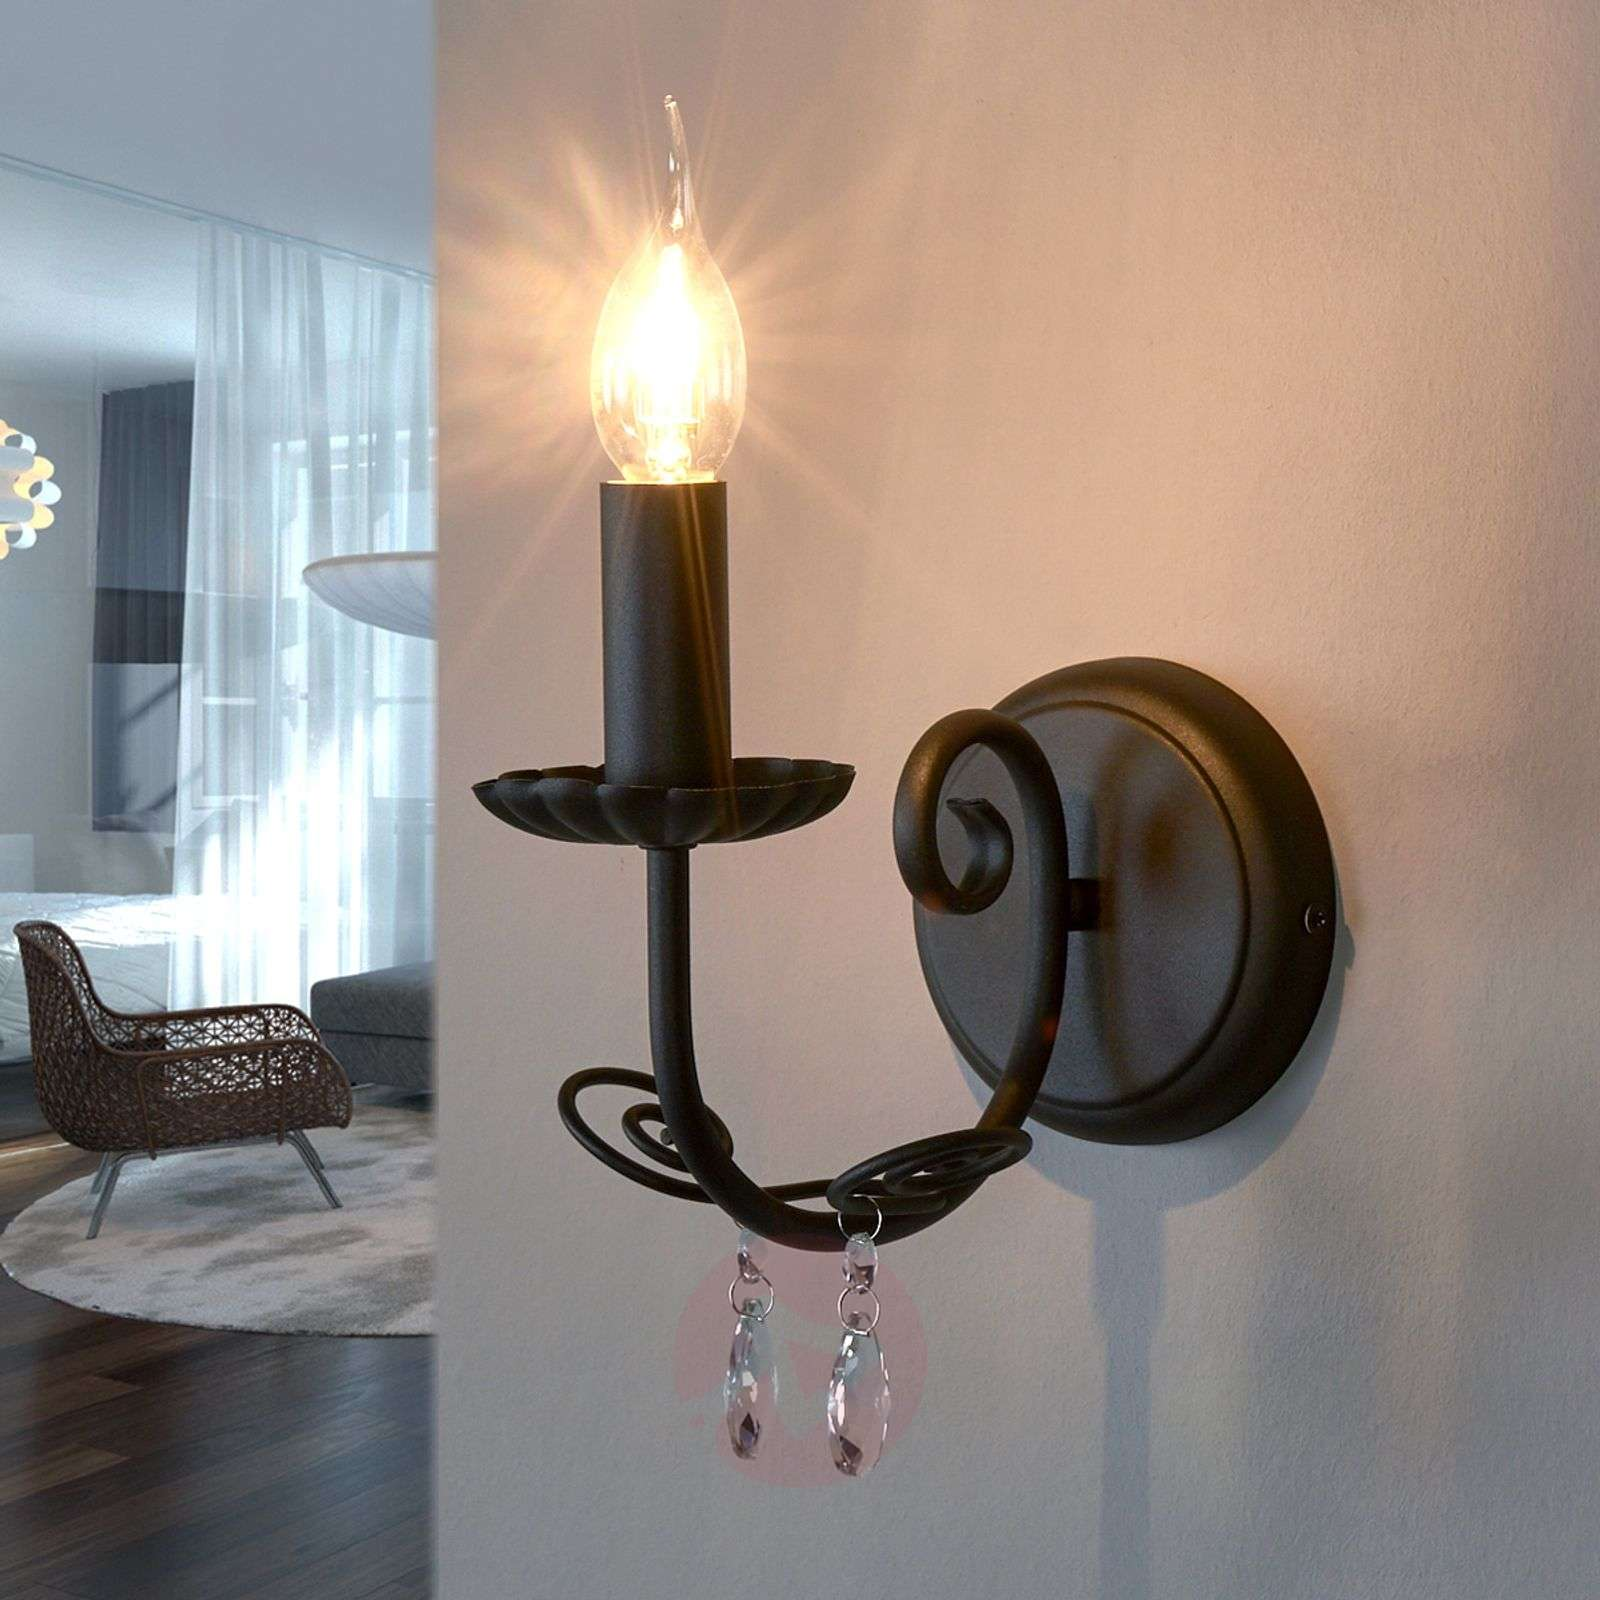 Wall light Sophina with chandelier style-9639021-01